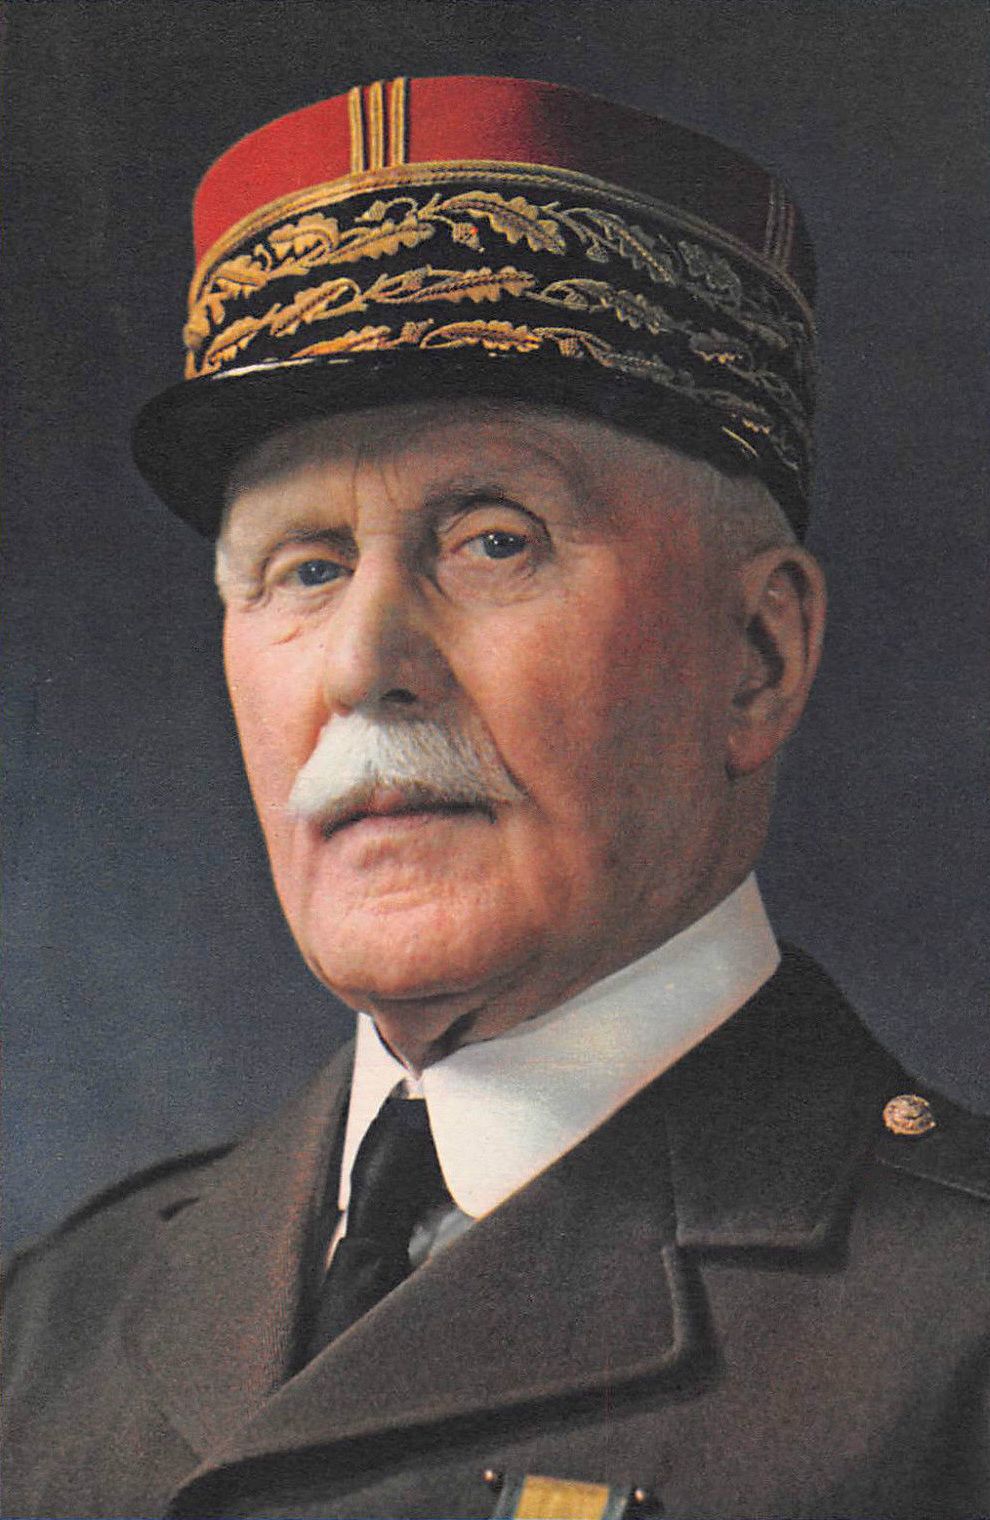 Philippe Pétain - Wikipedia